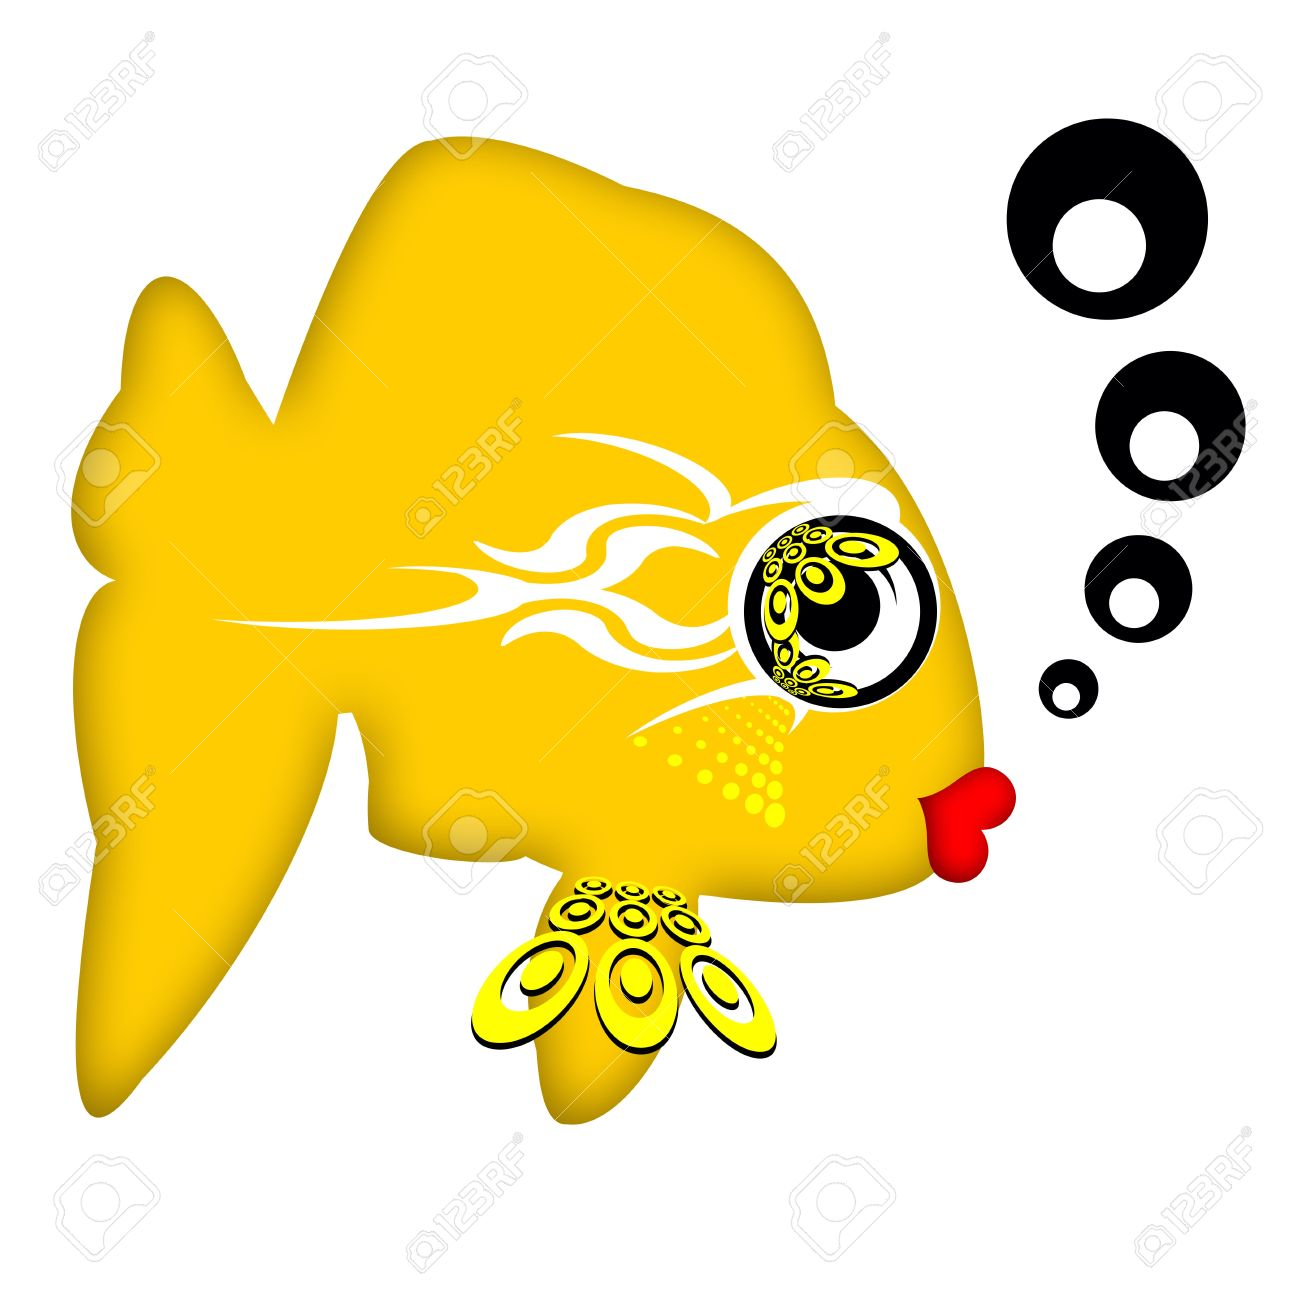 Pretty Fashionable Chic Golden Fish With Big Romantic Eyes And.